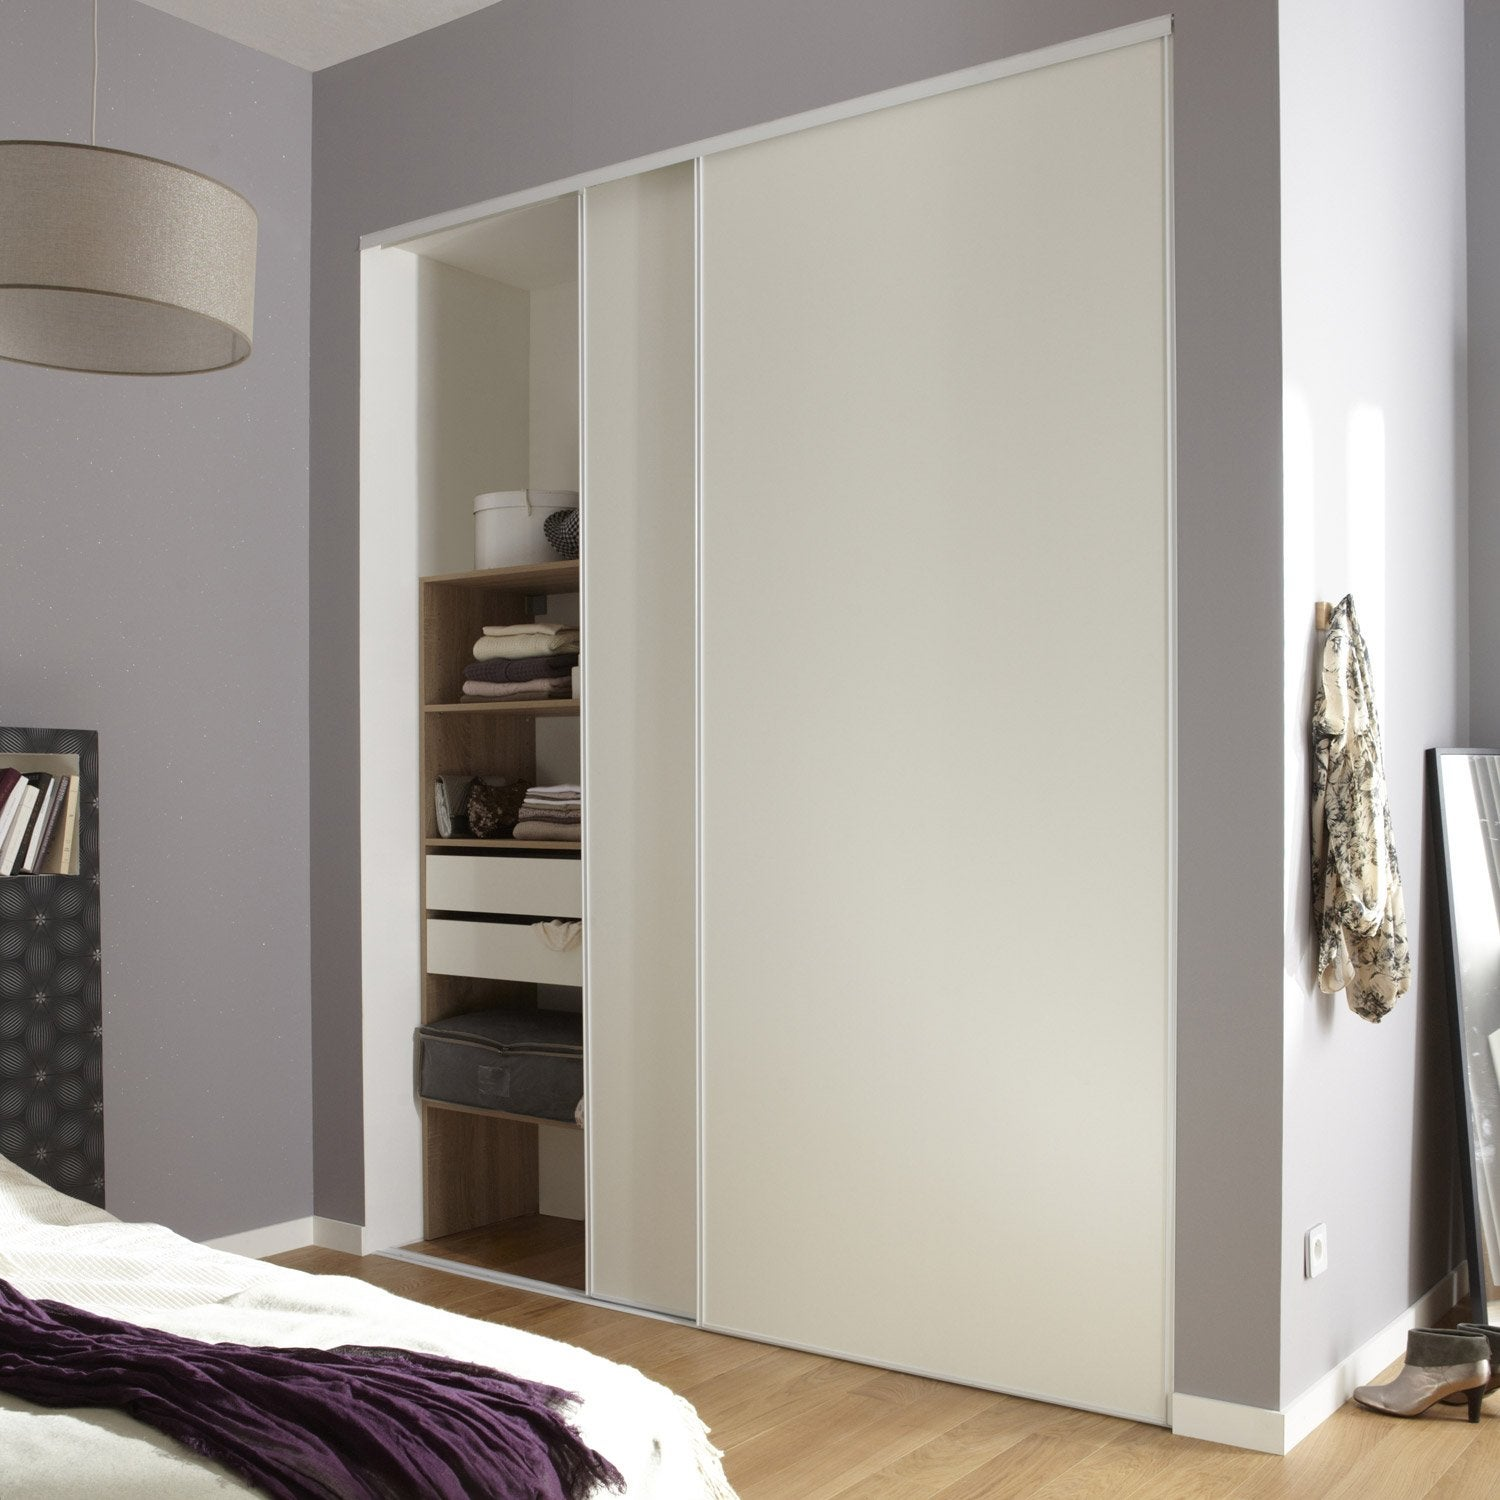 Incroyable Lot De 2 Portes De Placard Coulissante OPTIMUM L.210 X H.250 Cm Conception Etonnante